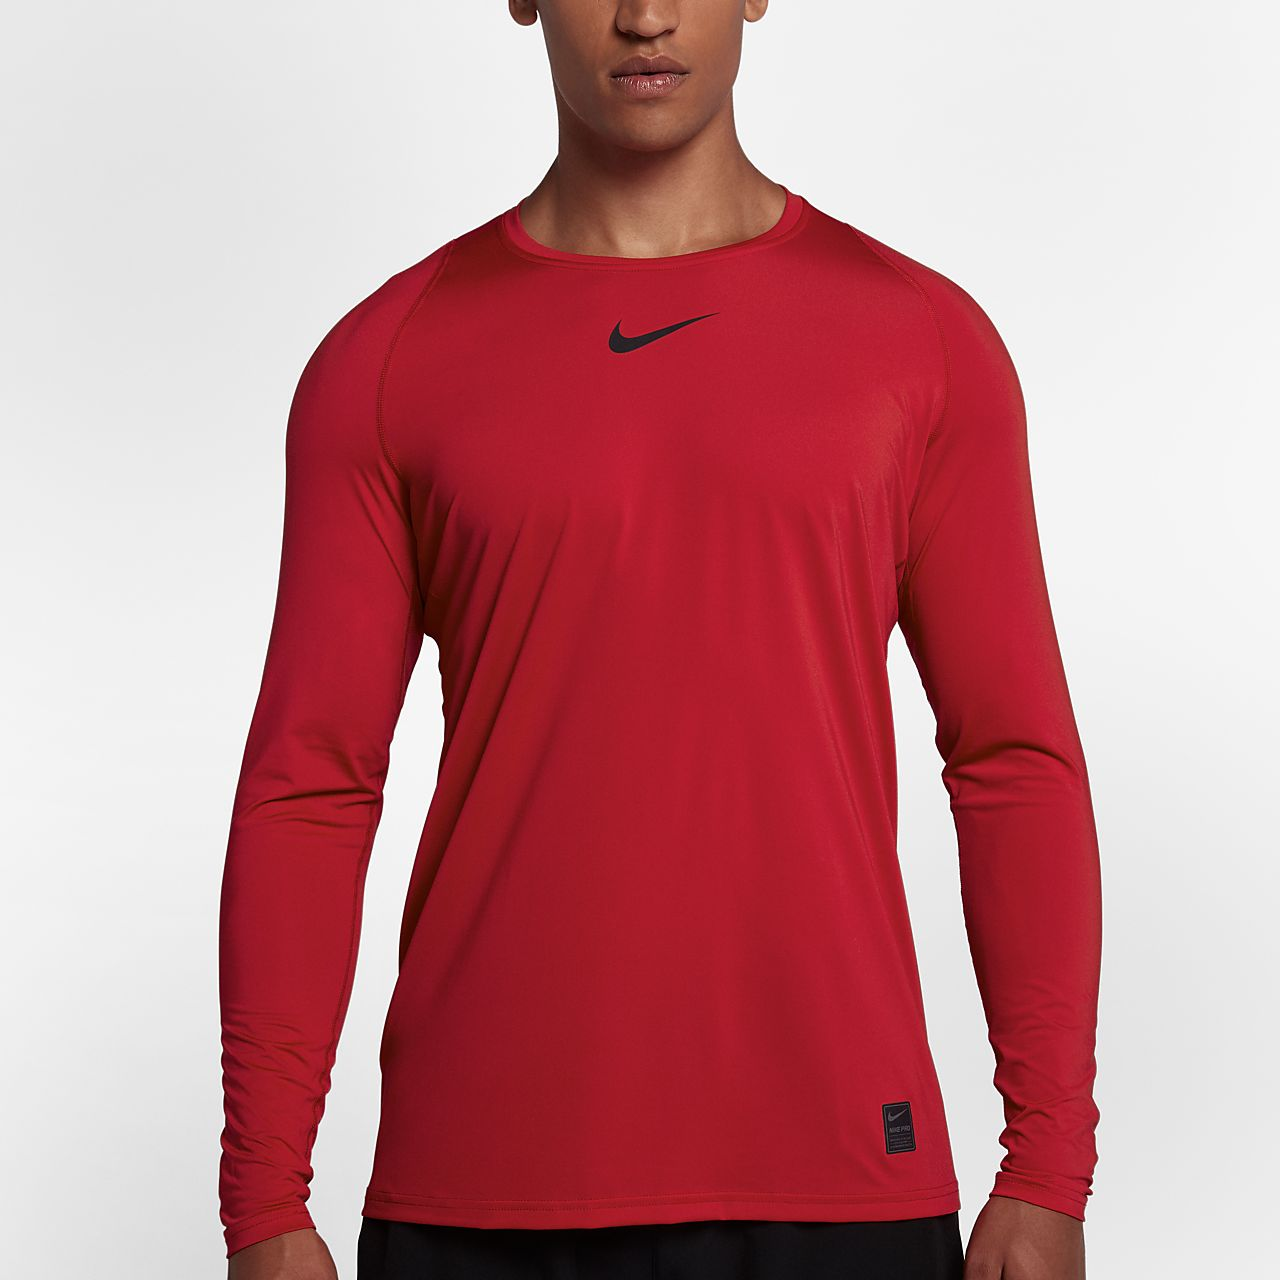 5529c27f4cfe4 Nike Pro Men's Long-Sleeve Fitted Top. Nike.com